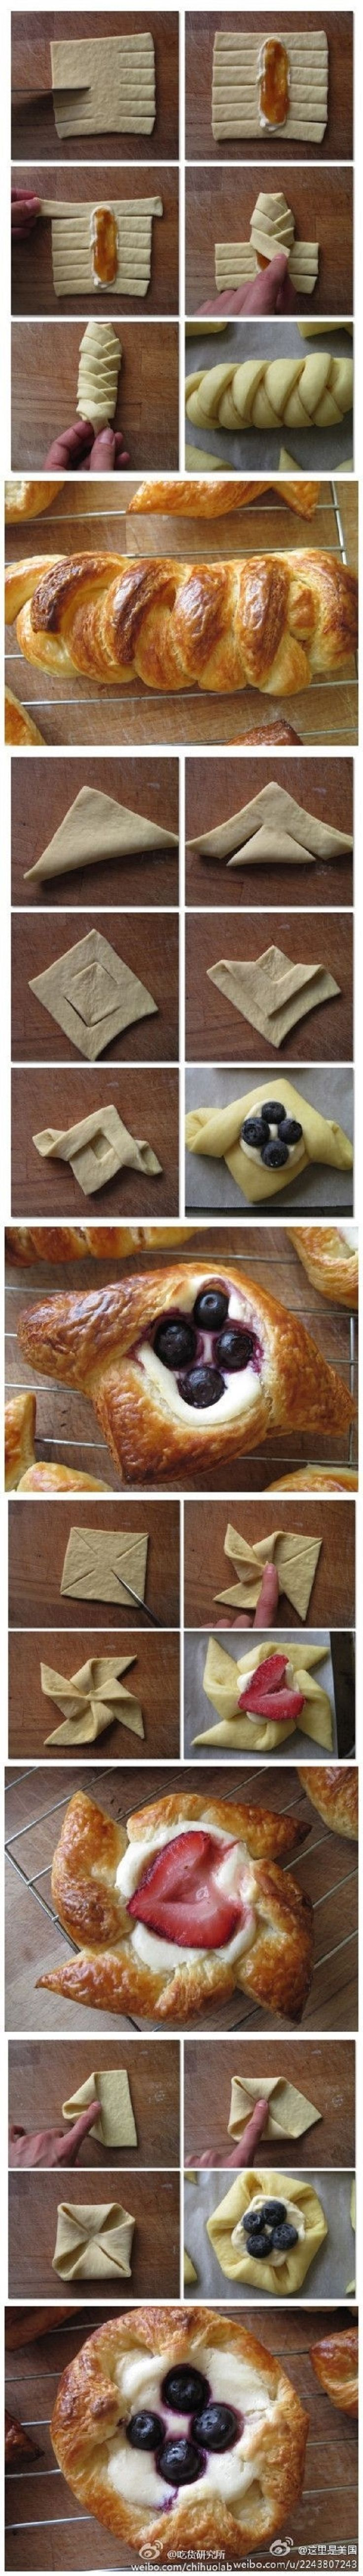 Pastry Folding Hacks - 15 Little-Known Cooking Hacks That'll Make You a Pro | GleamItUp